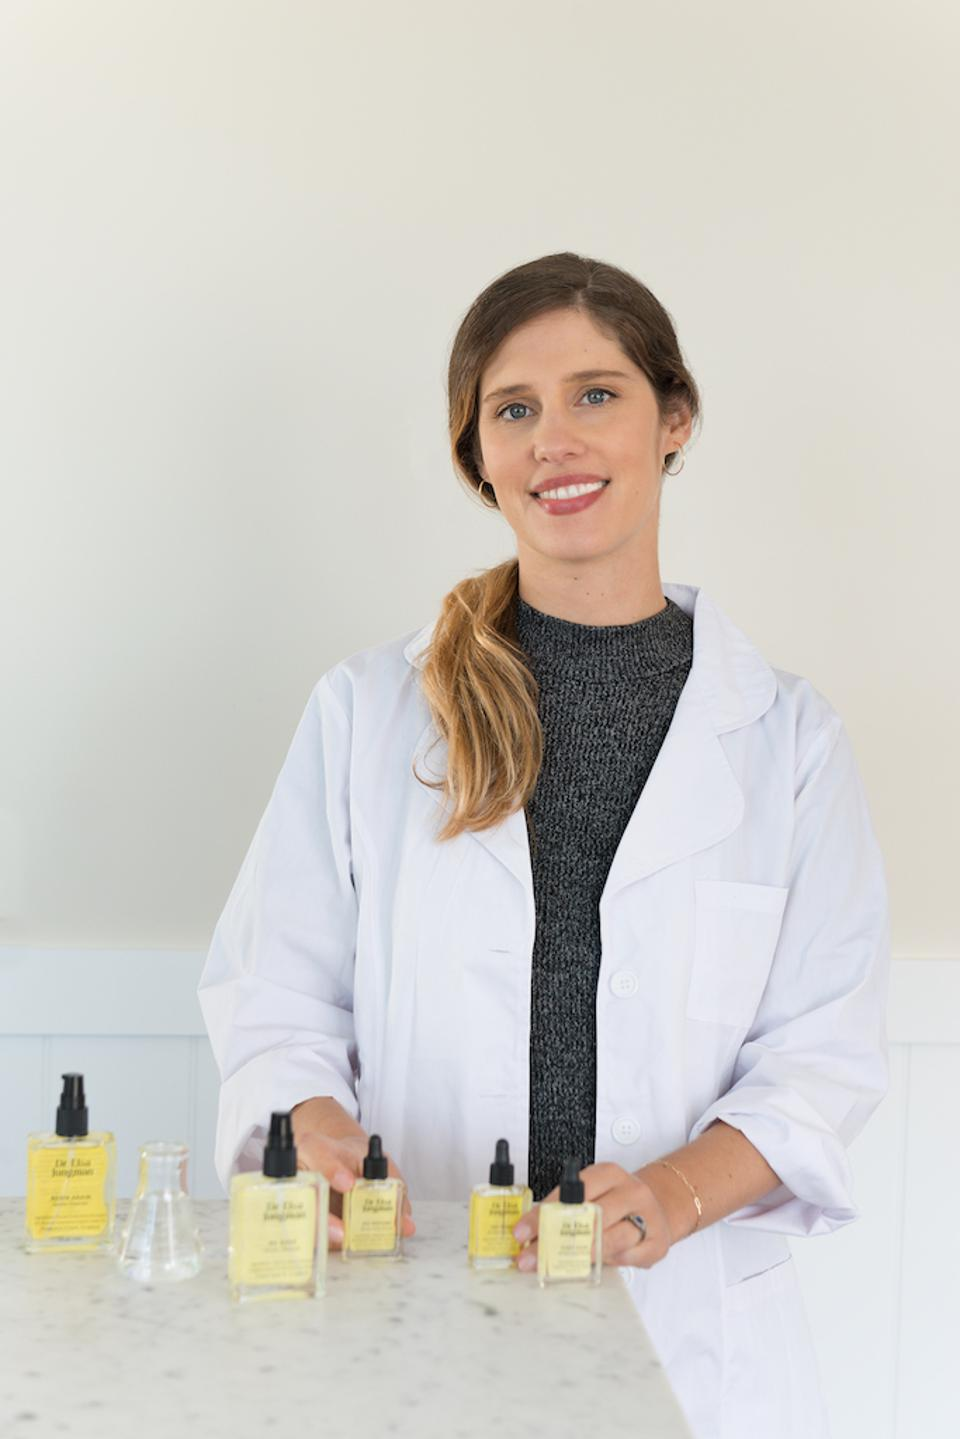 Skin specialist and micro-biome advocate Dr Elsa Jungman